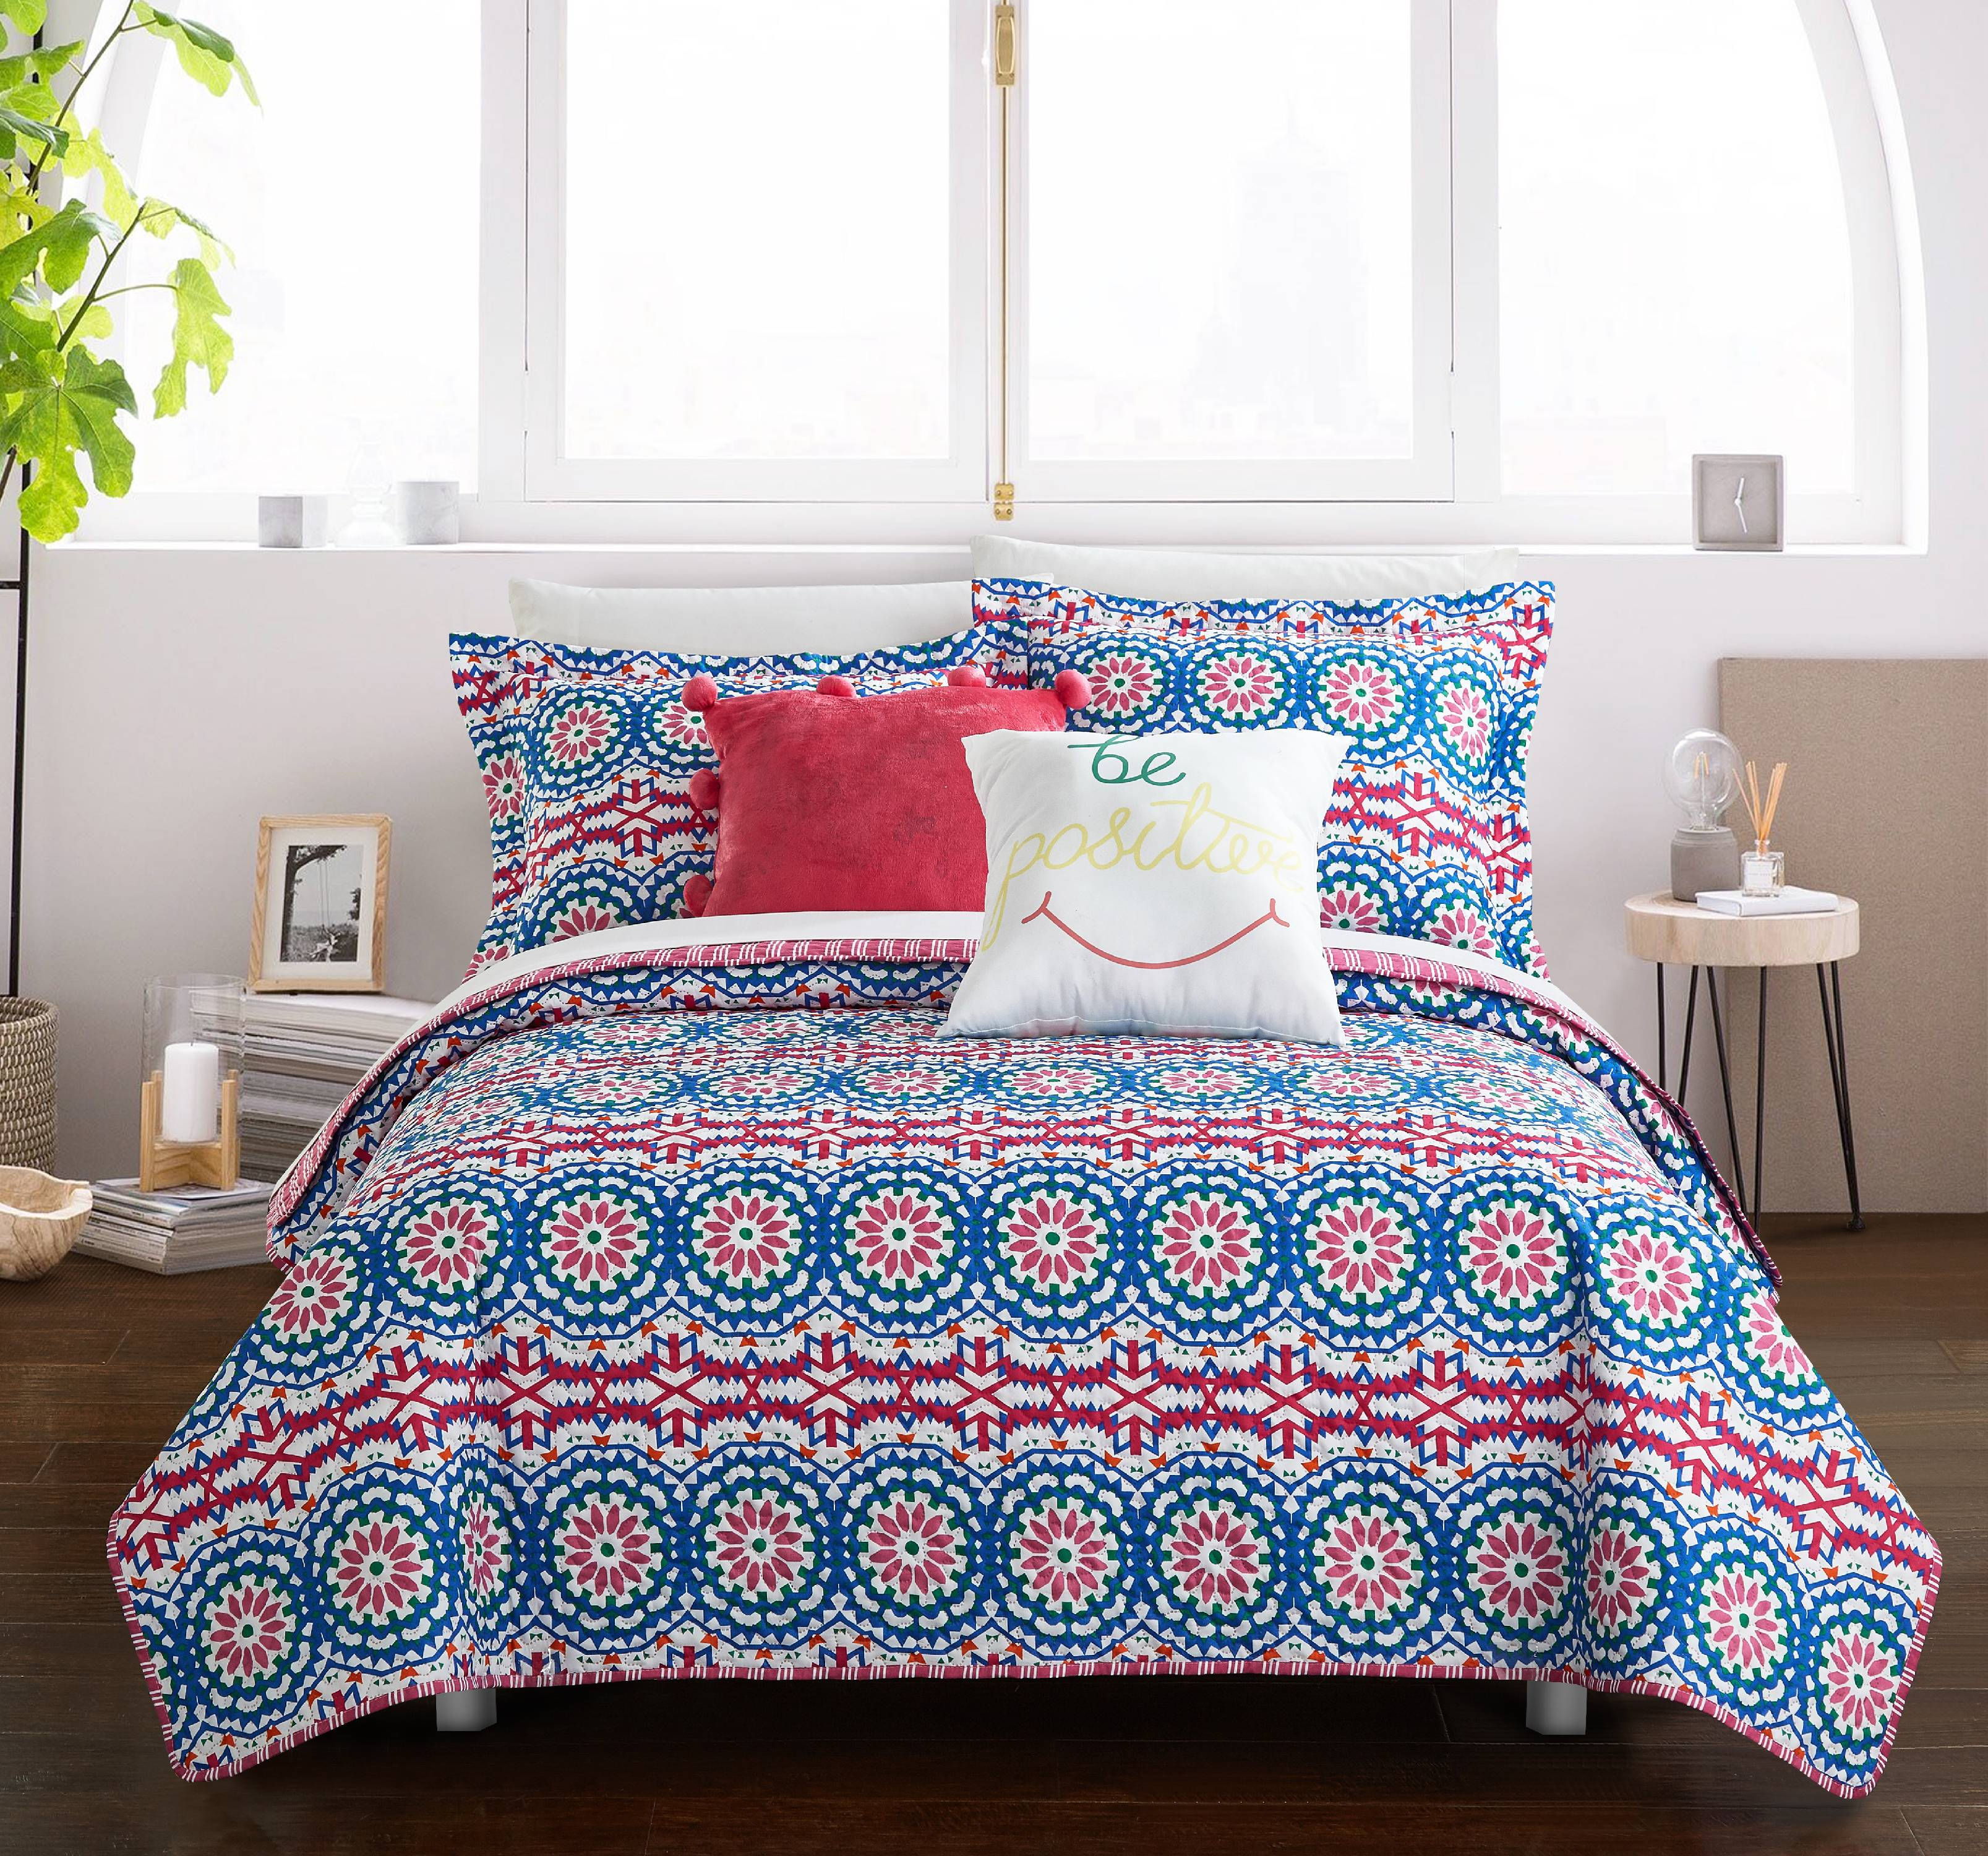 Chic Home Sachio 5 Piece Reversible Quilt Cover Set